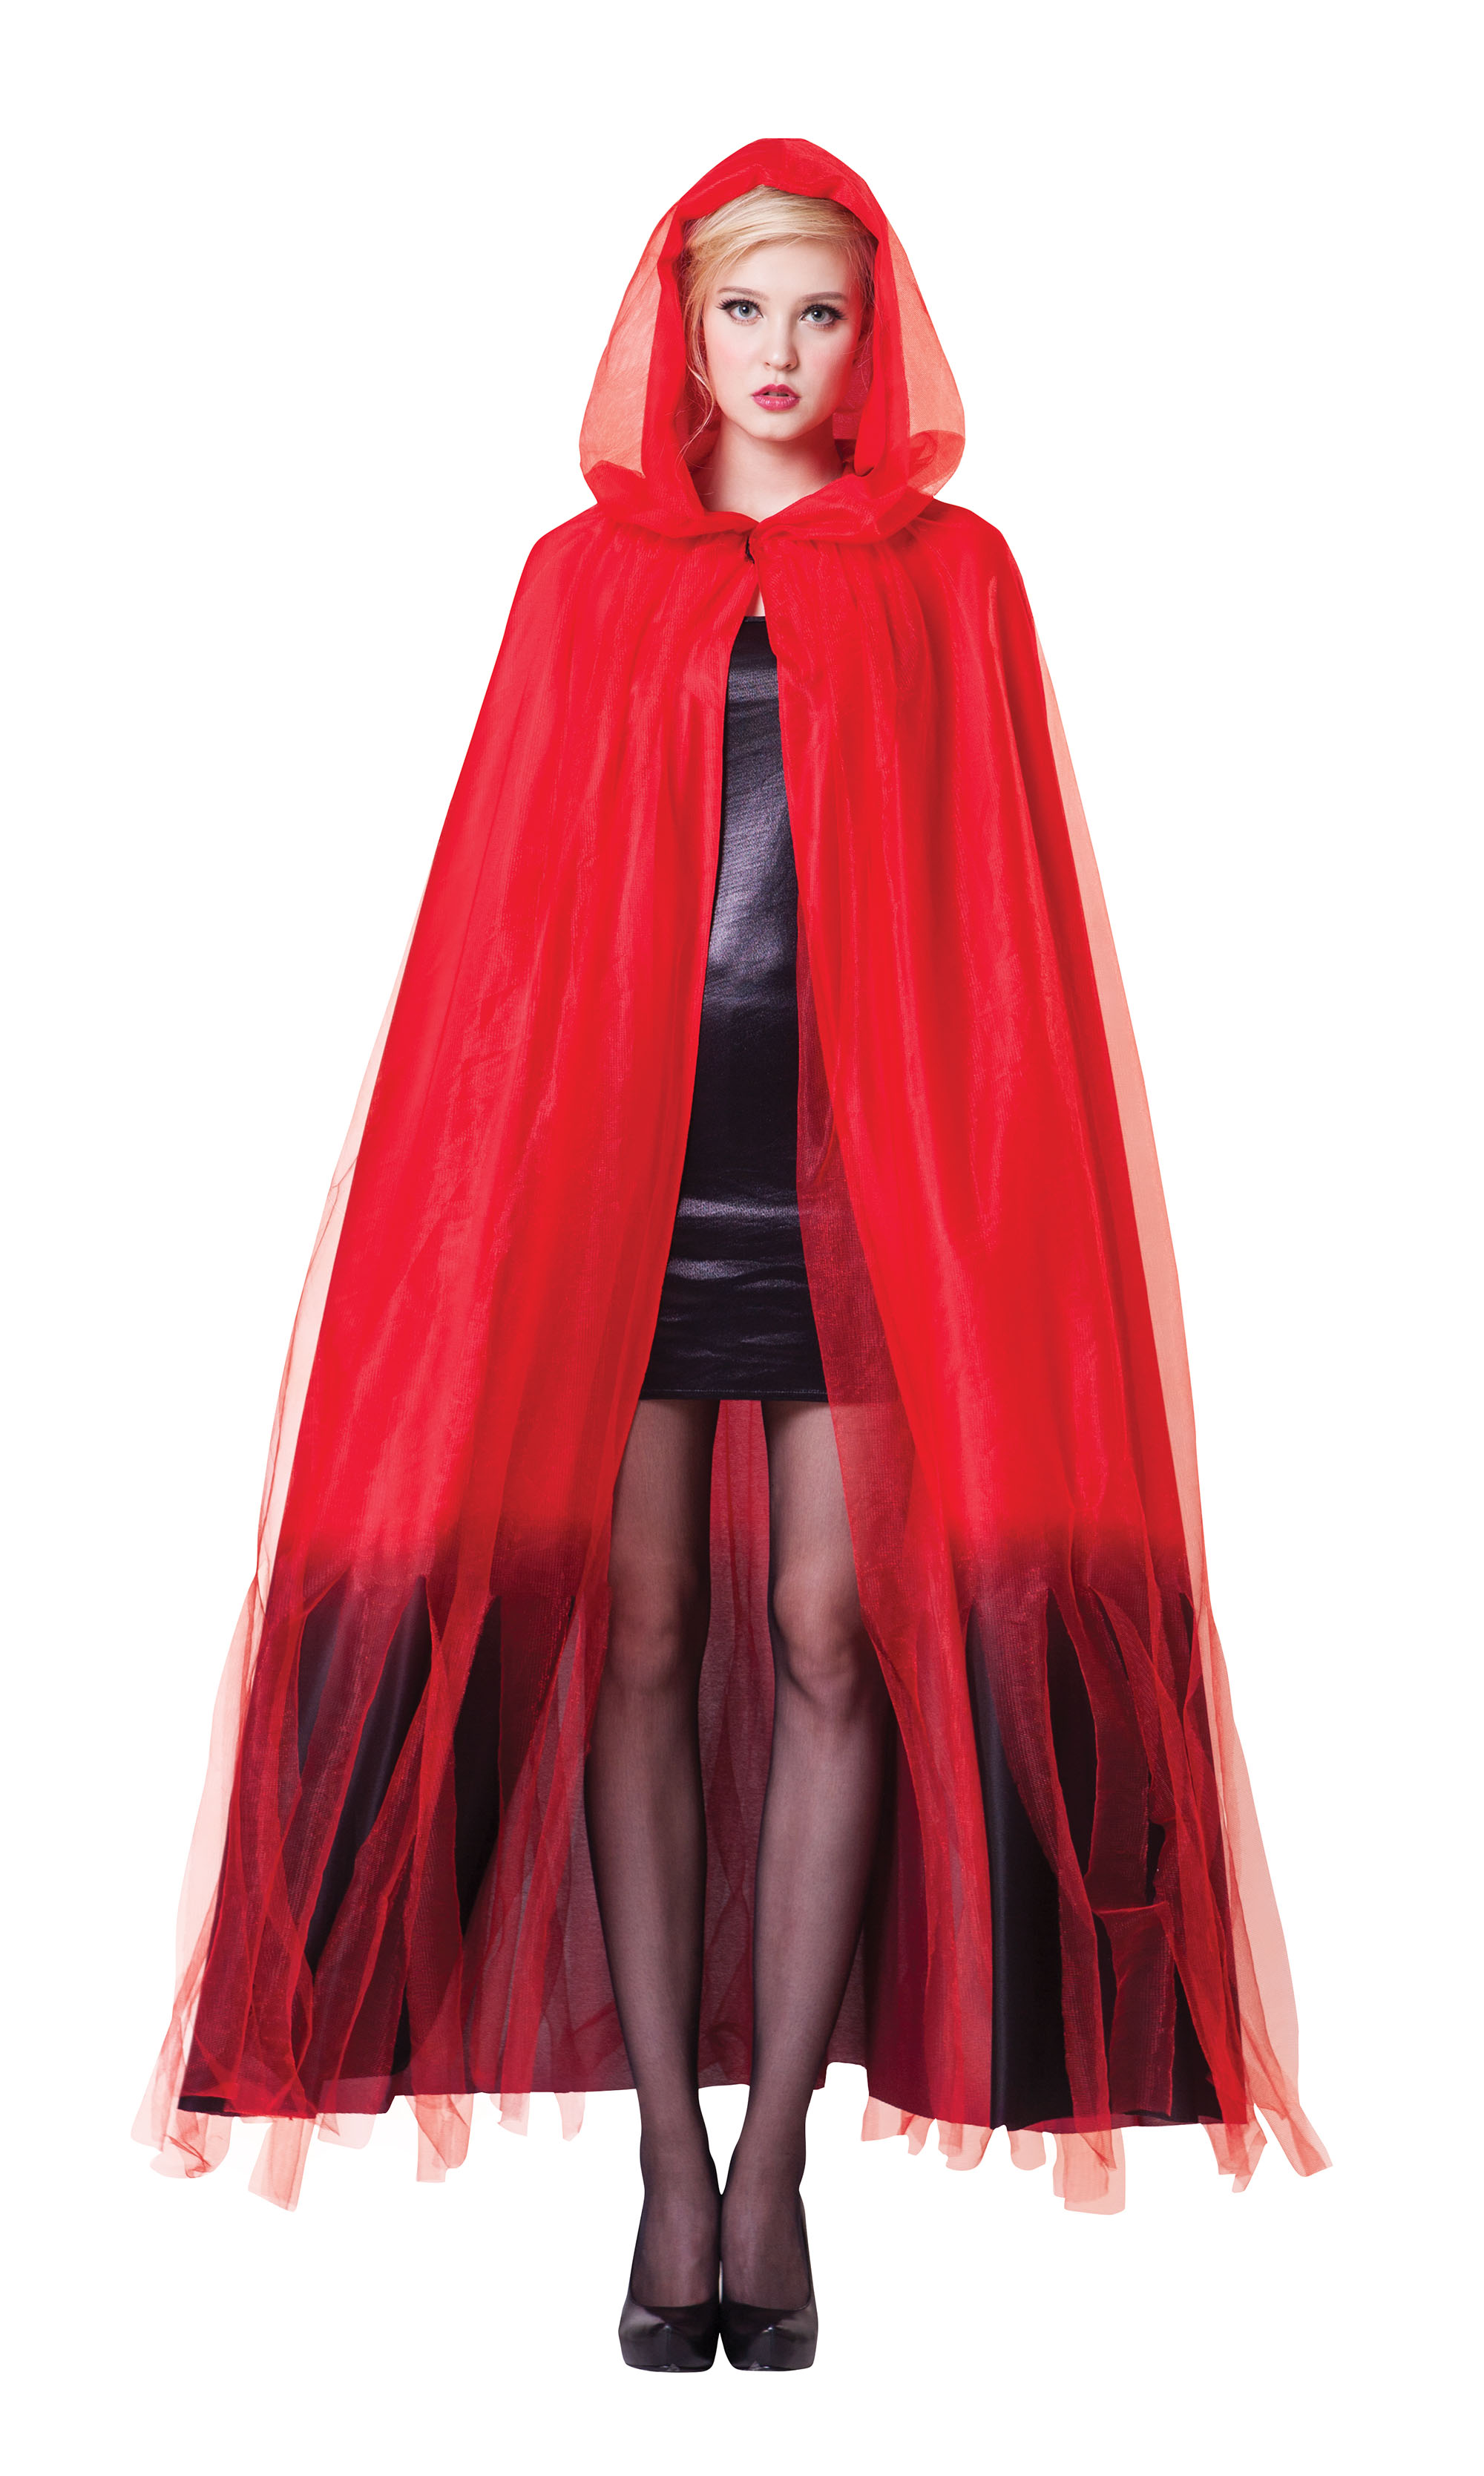 Ladies Womens Hooded Red Cape Cloak With Black Finish Halloween Fancy Dress